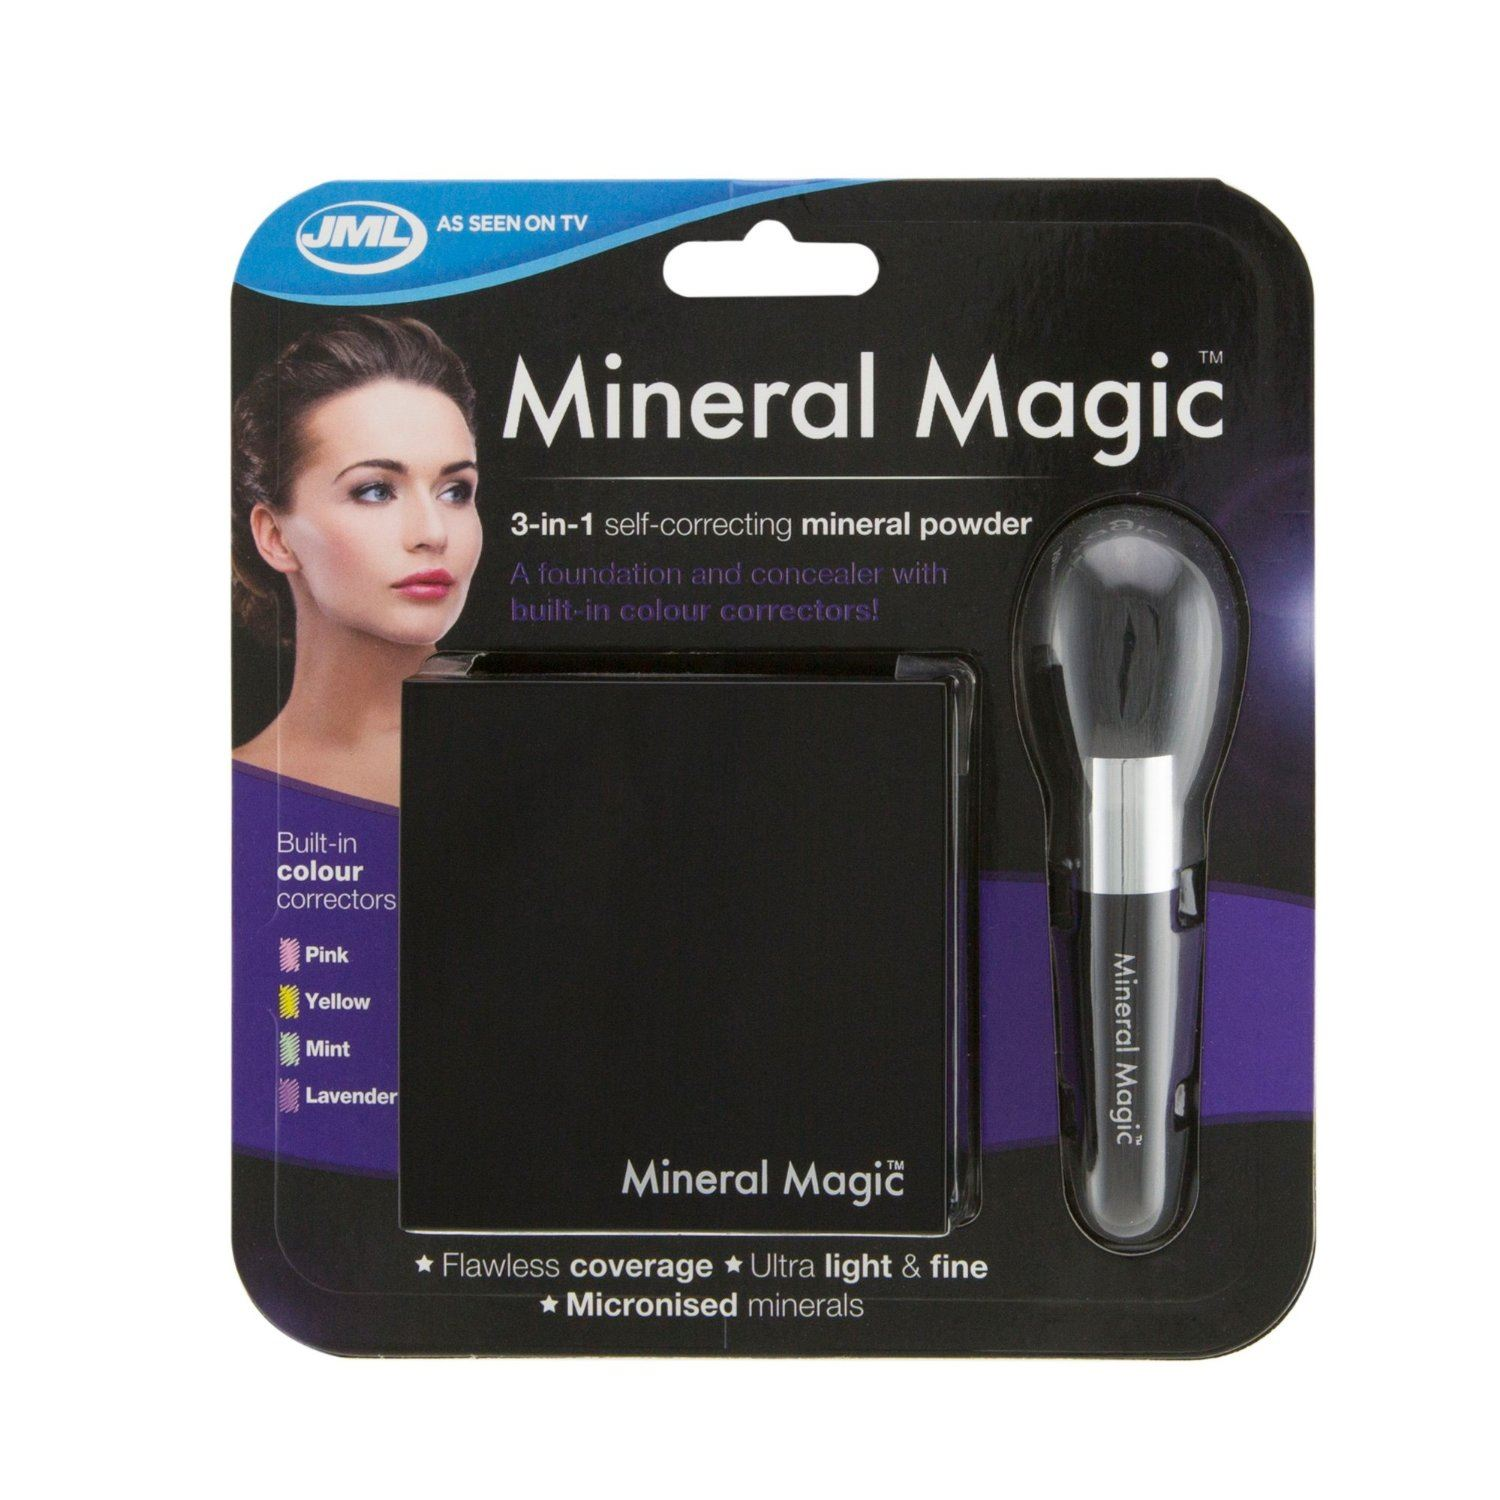 Jml Mineral Magic Make Up 3 In 1 Self Correcting Powder Ebay